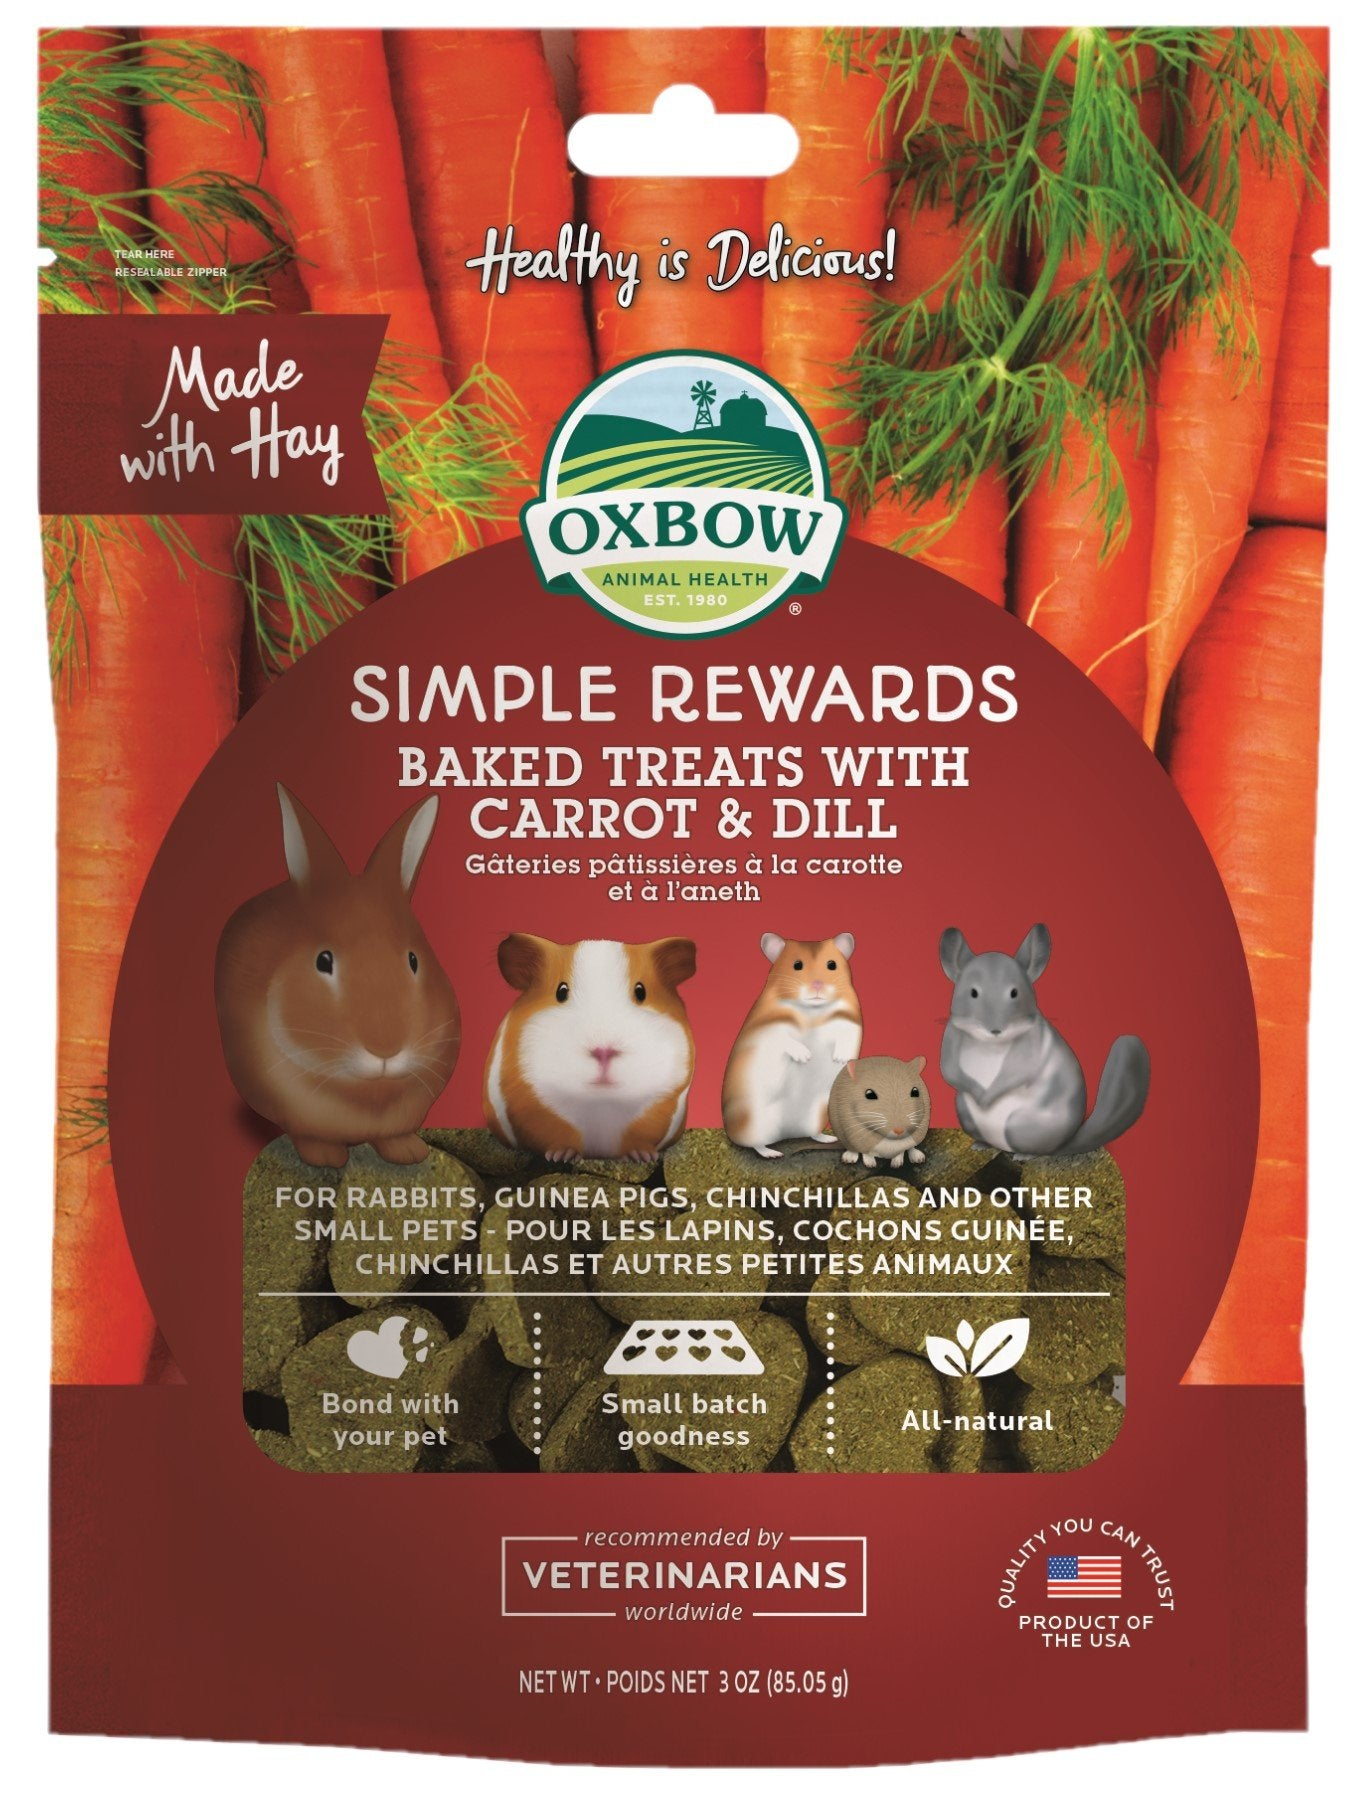 Oxbow Simple Rewards Carrot & Dill 85g - RSPCA VIC